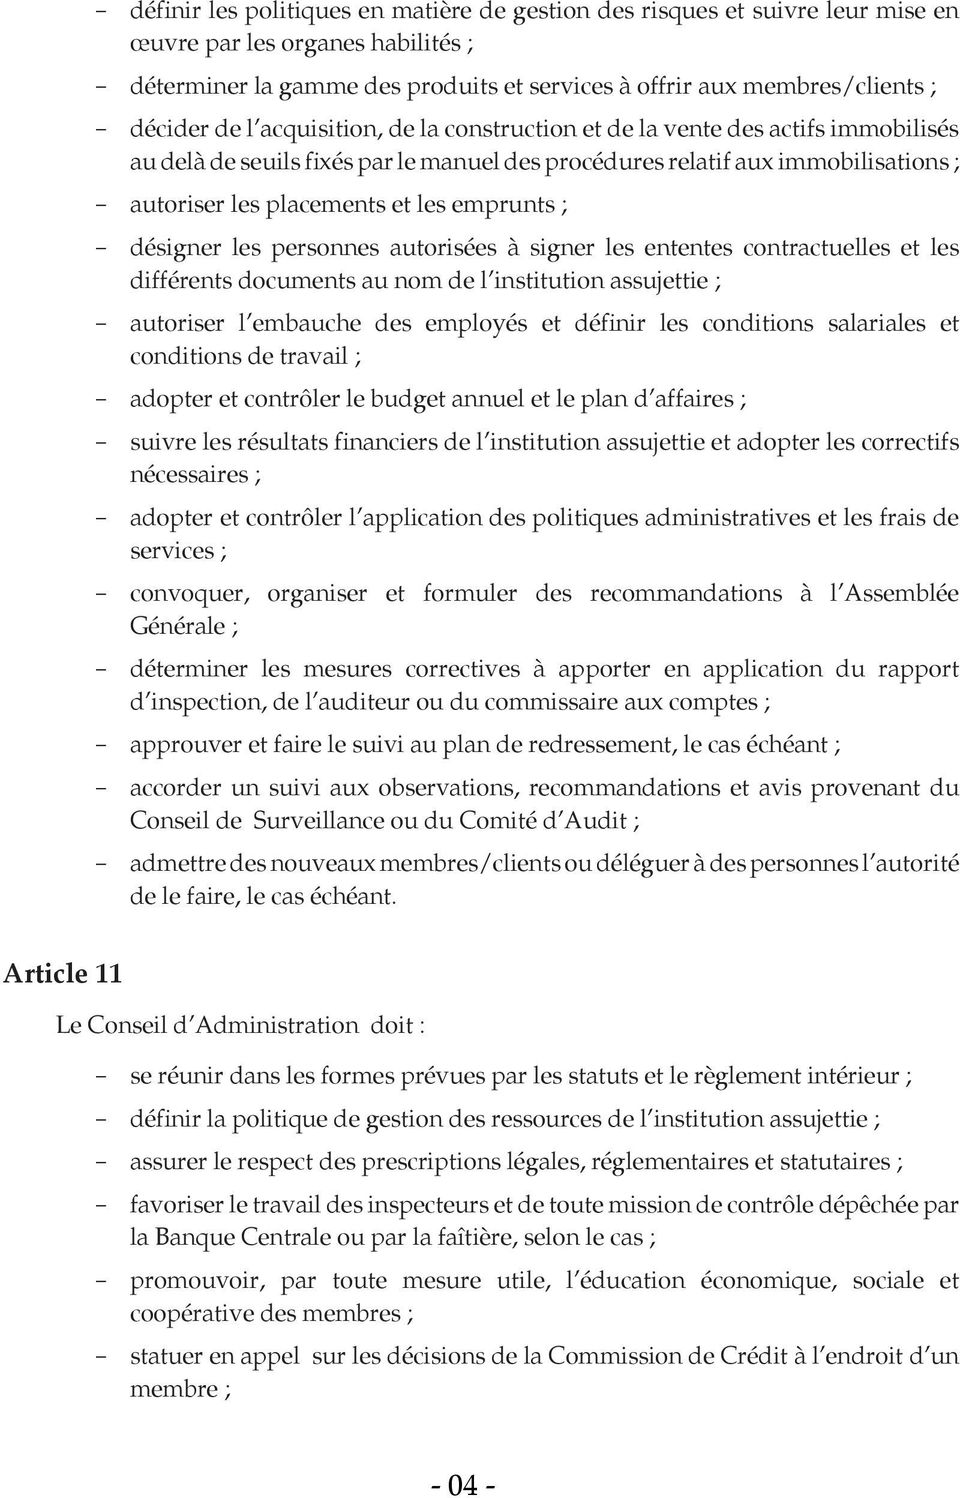 ; désigner les personnes autorisées à signer les ententes contractuelles et les différents documents au nom de l institution assujettie ; autoriser l embauche des employés et définir les conditions